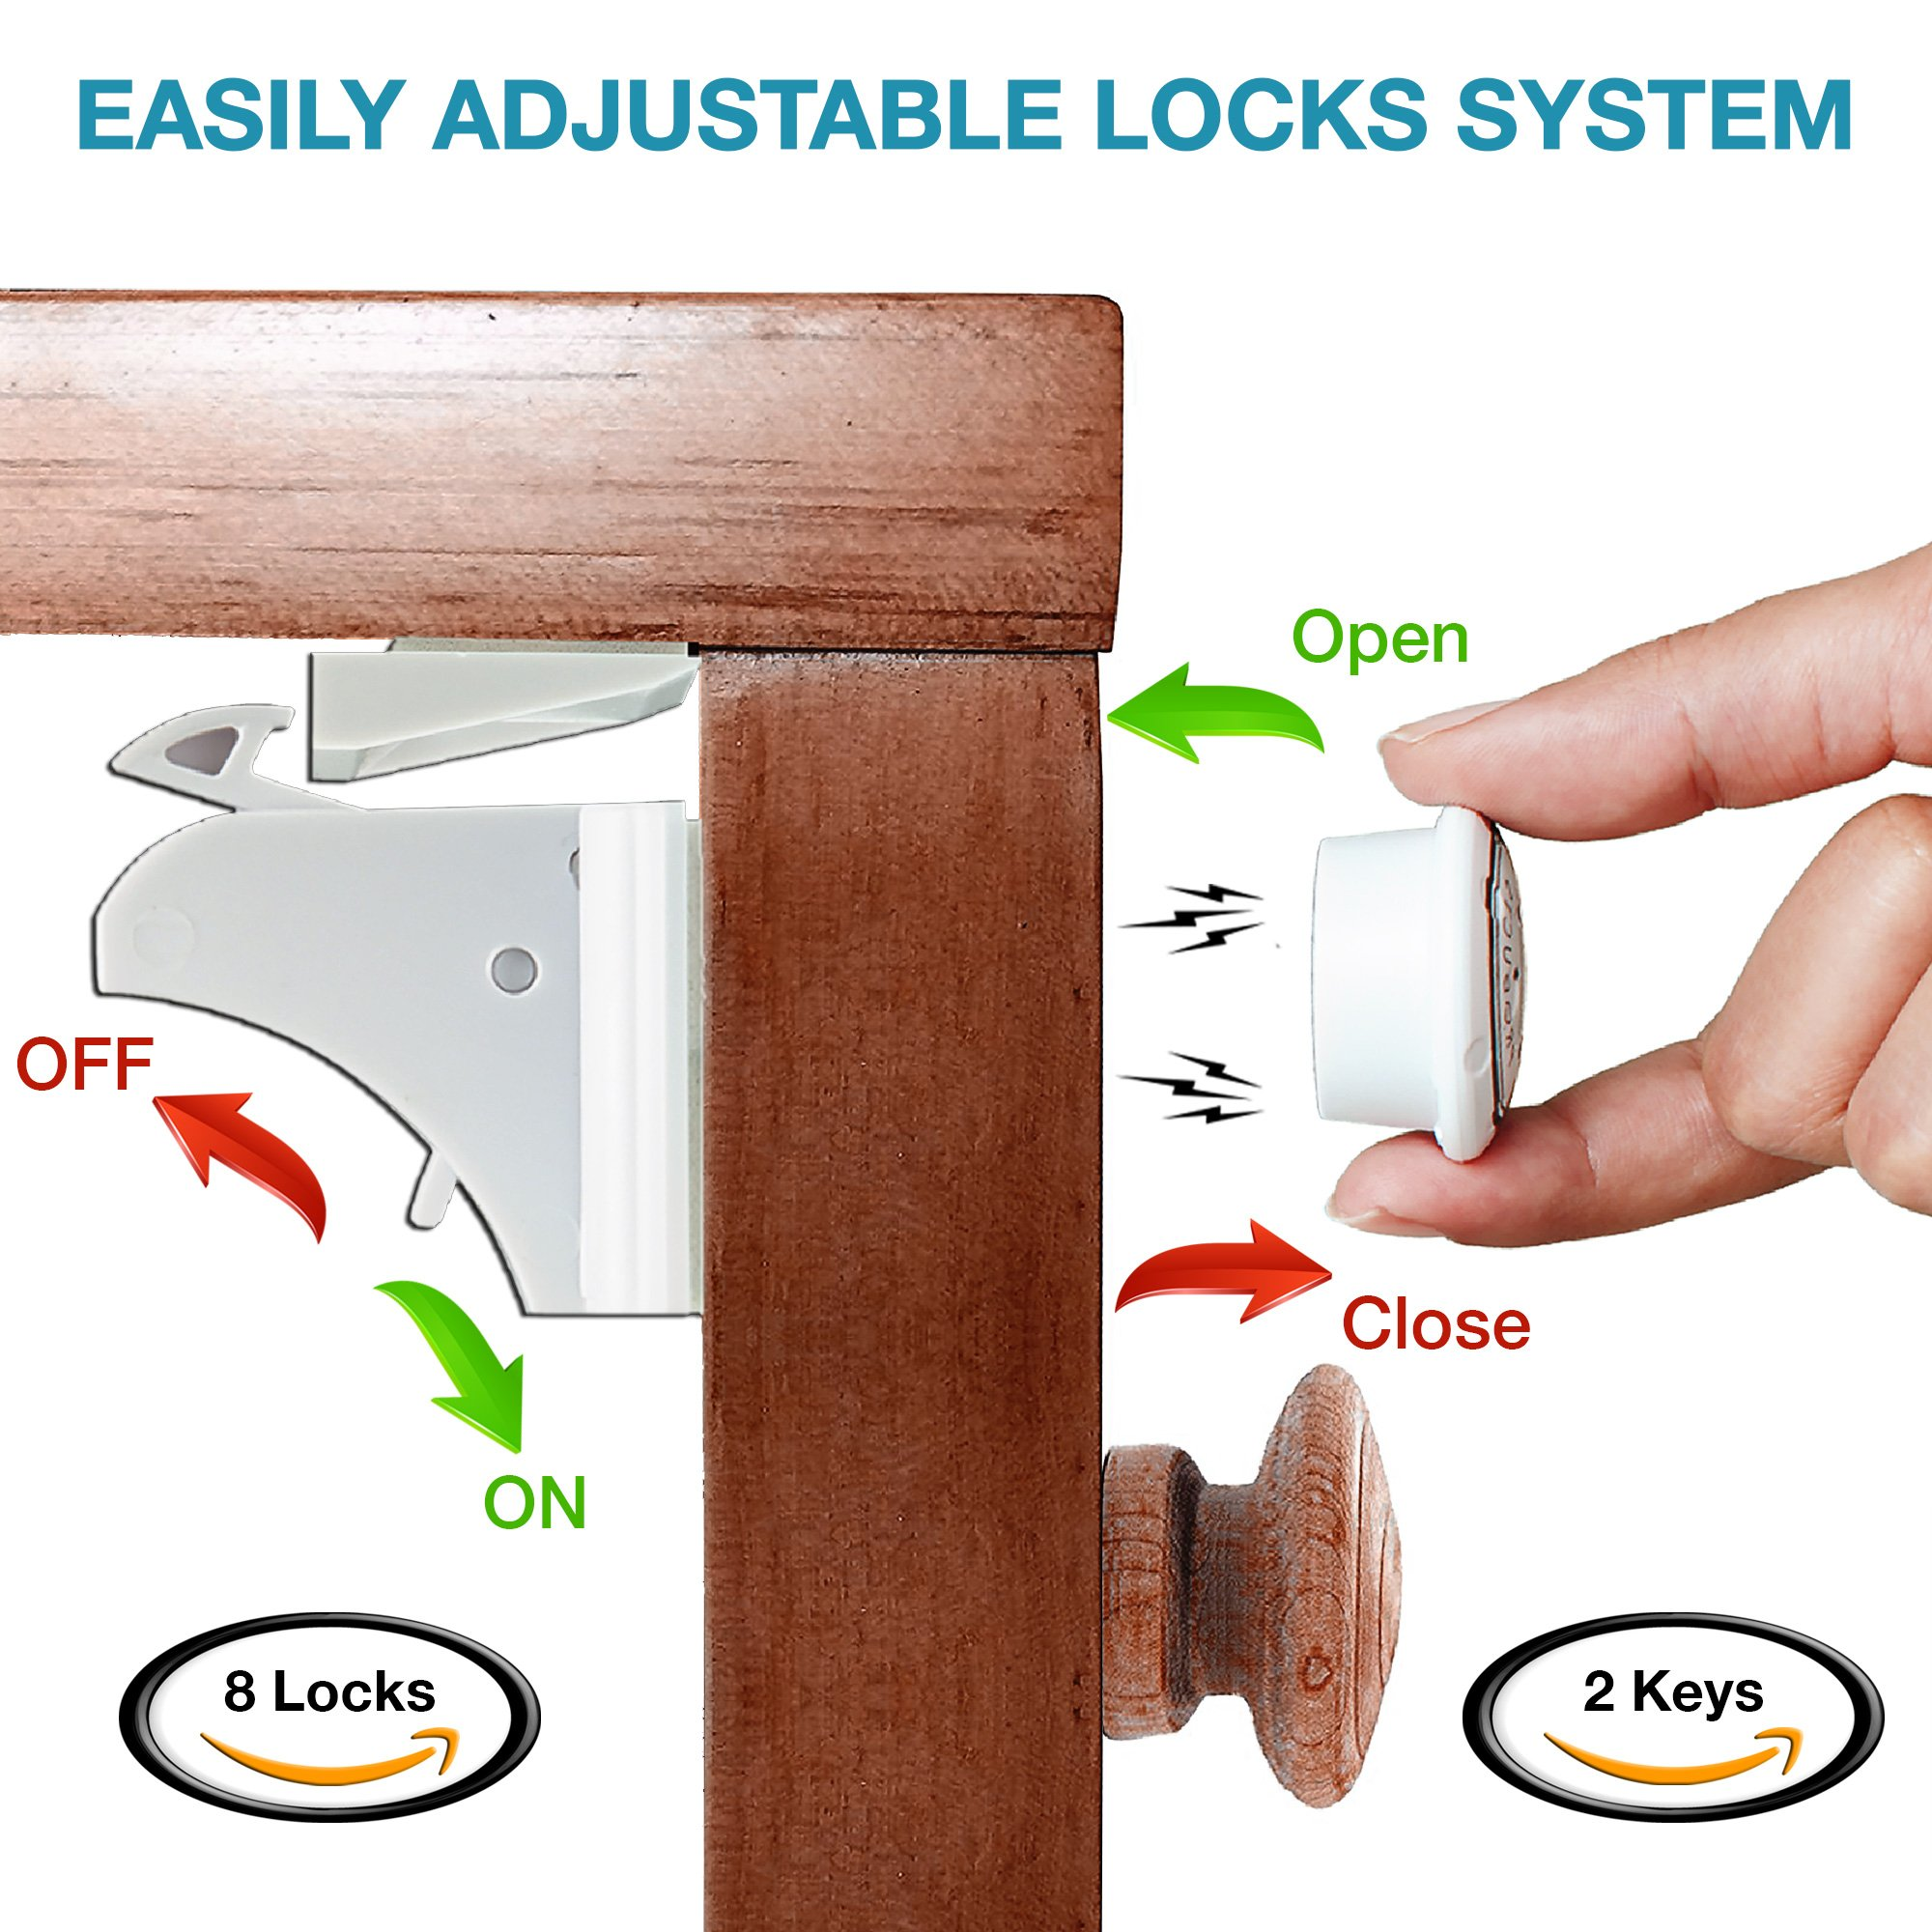 Invisible Magnetic No Drill Safety Lock: Keep Your Baby Safe! Secure Kitchen & Bedroom Cabinets & cupboards With 8 Child Proof Door & Drawer Locks for Kids & toddlers.2 Keys & 3M Adhesive Straps by MQP (Image #3)